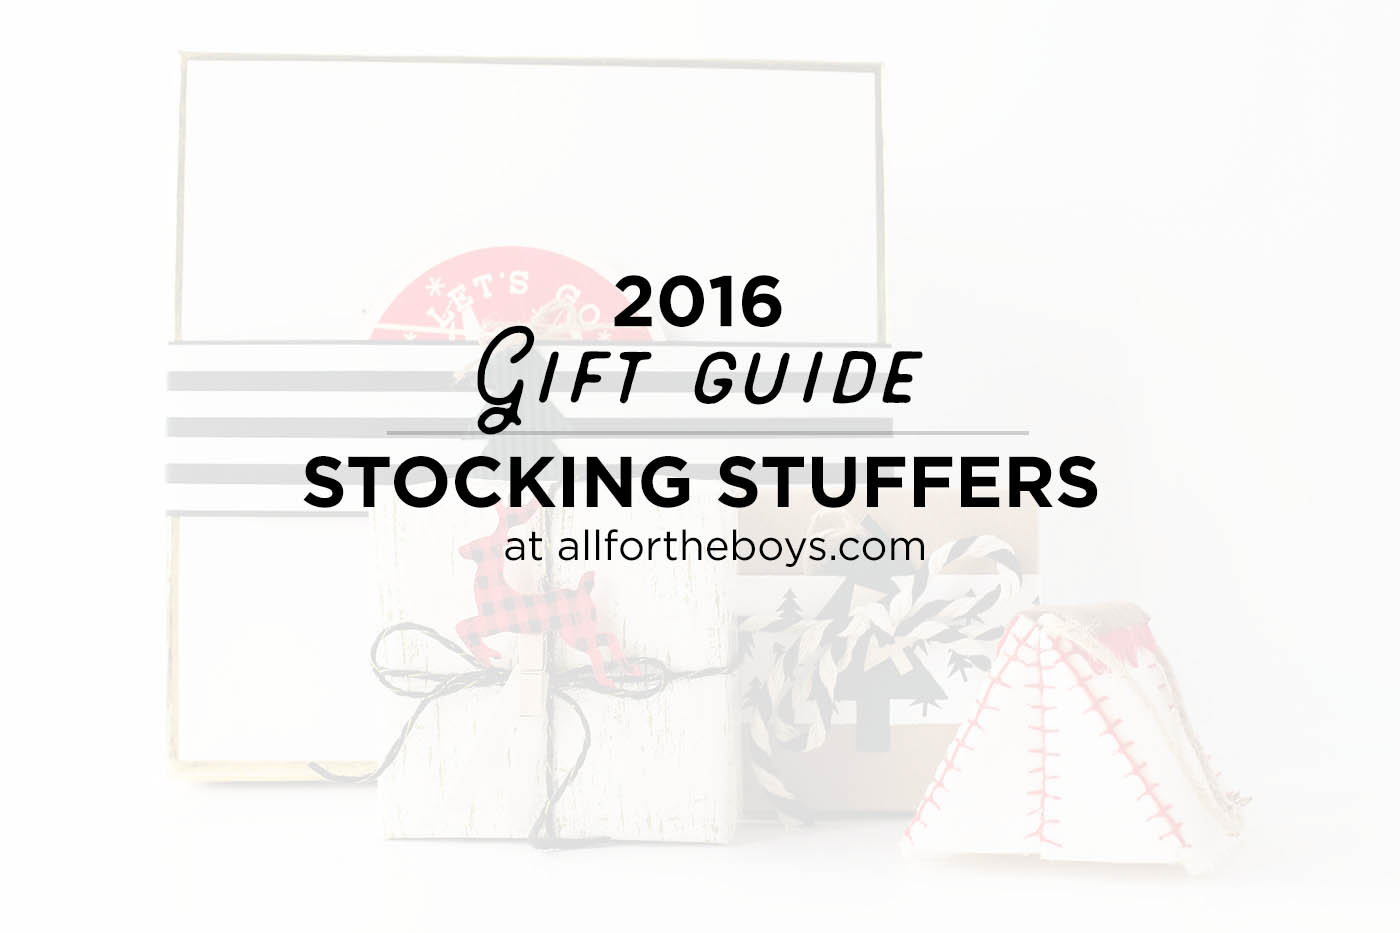 2016 Gift Guide stocking stuffer ideas